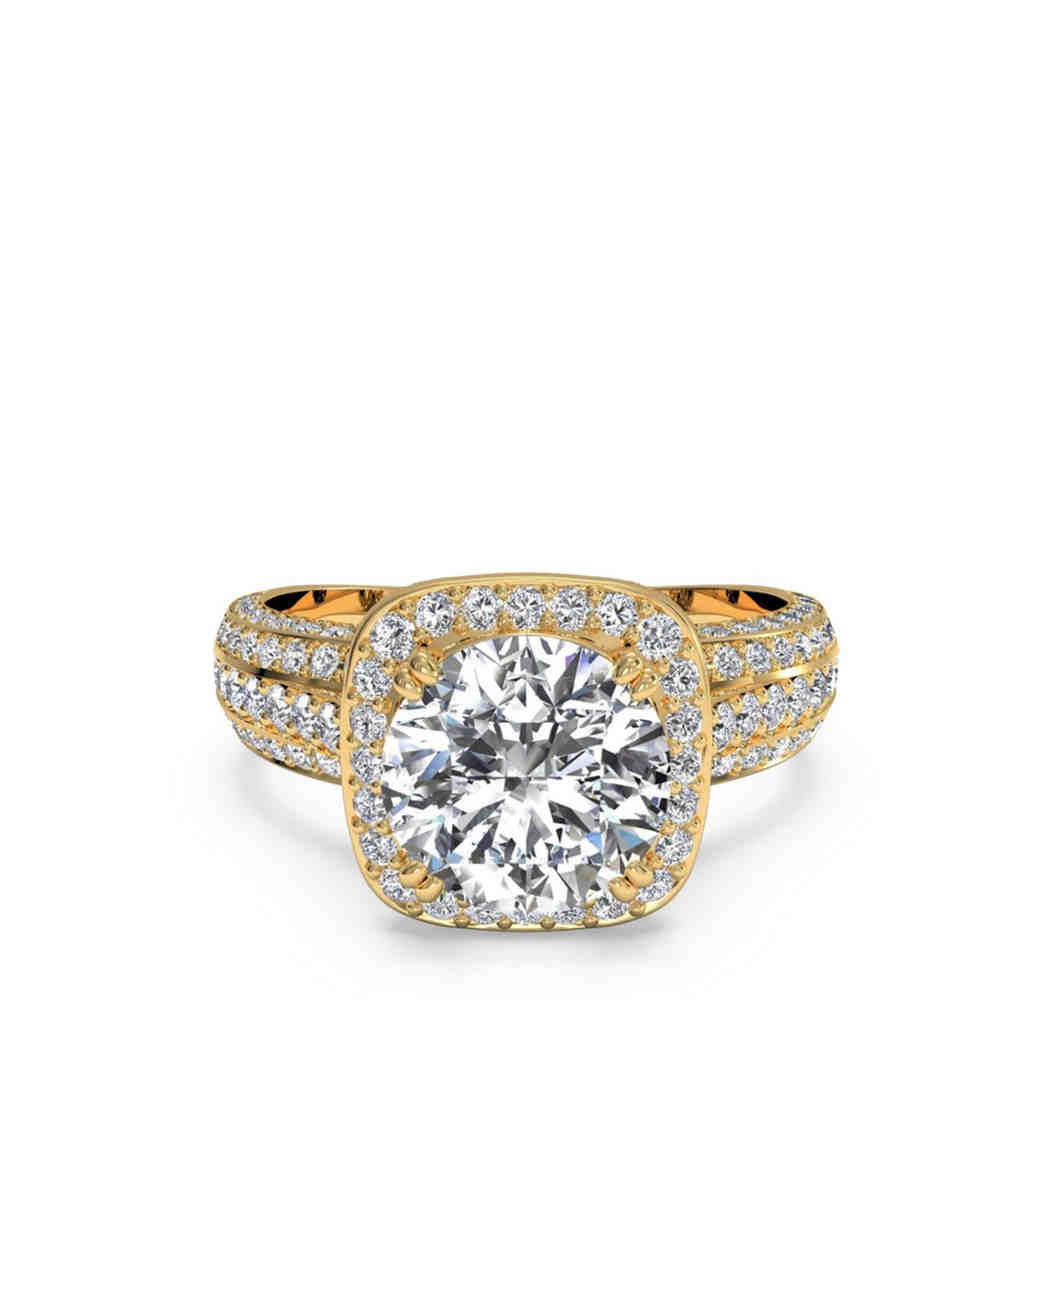 Communication on this topic: 12 Most Unique Engagement Rings For Women, 12-most-unique-engagement-rings-for-women/